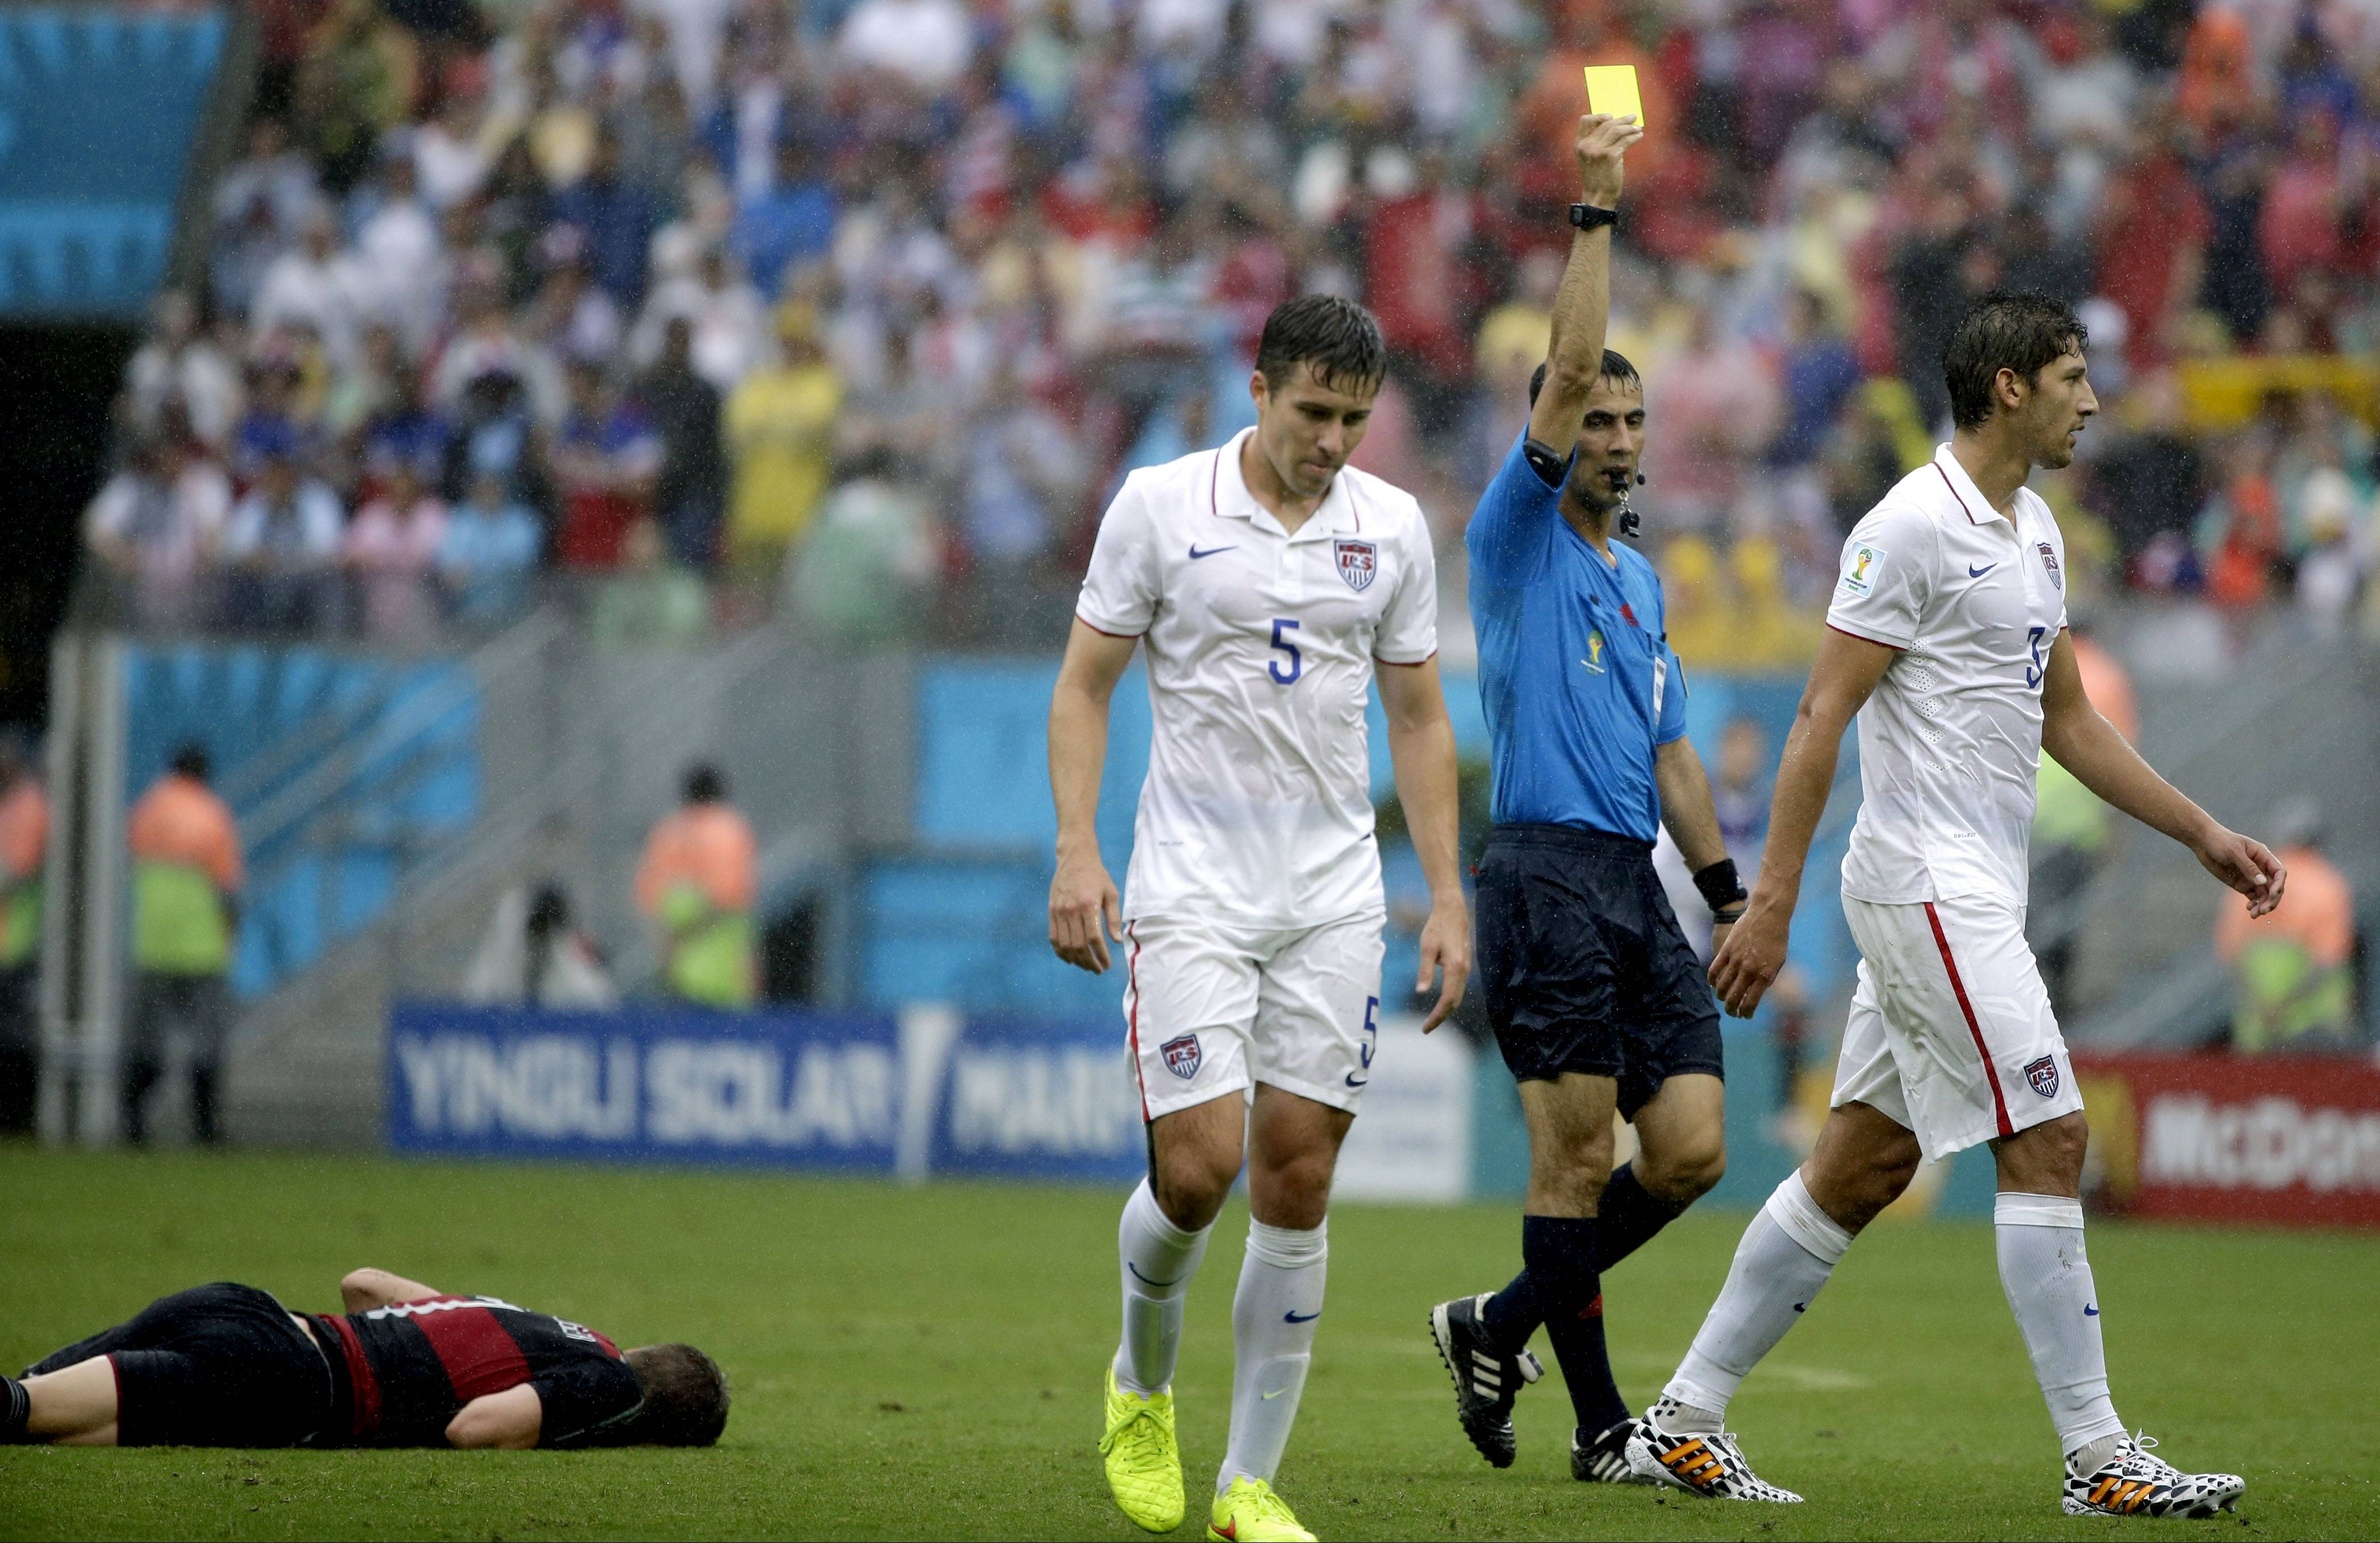 United States' Omar Gonzalez is given a yellow card by referee Ravshan Irmatov from Uzbekistan after an incident involving Germany's Bastian Schweinsteiger, left, during the group G World Cup soccer match between the USA and Germany at the Arena Pernambuco in Recife, Brazil, Thursday, June 26, 2014. At center is United States' Matt Besler.